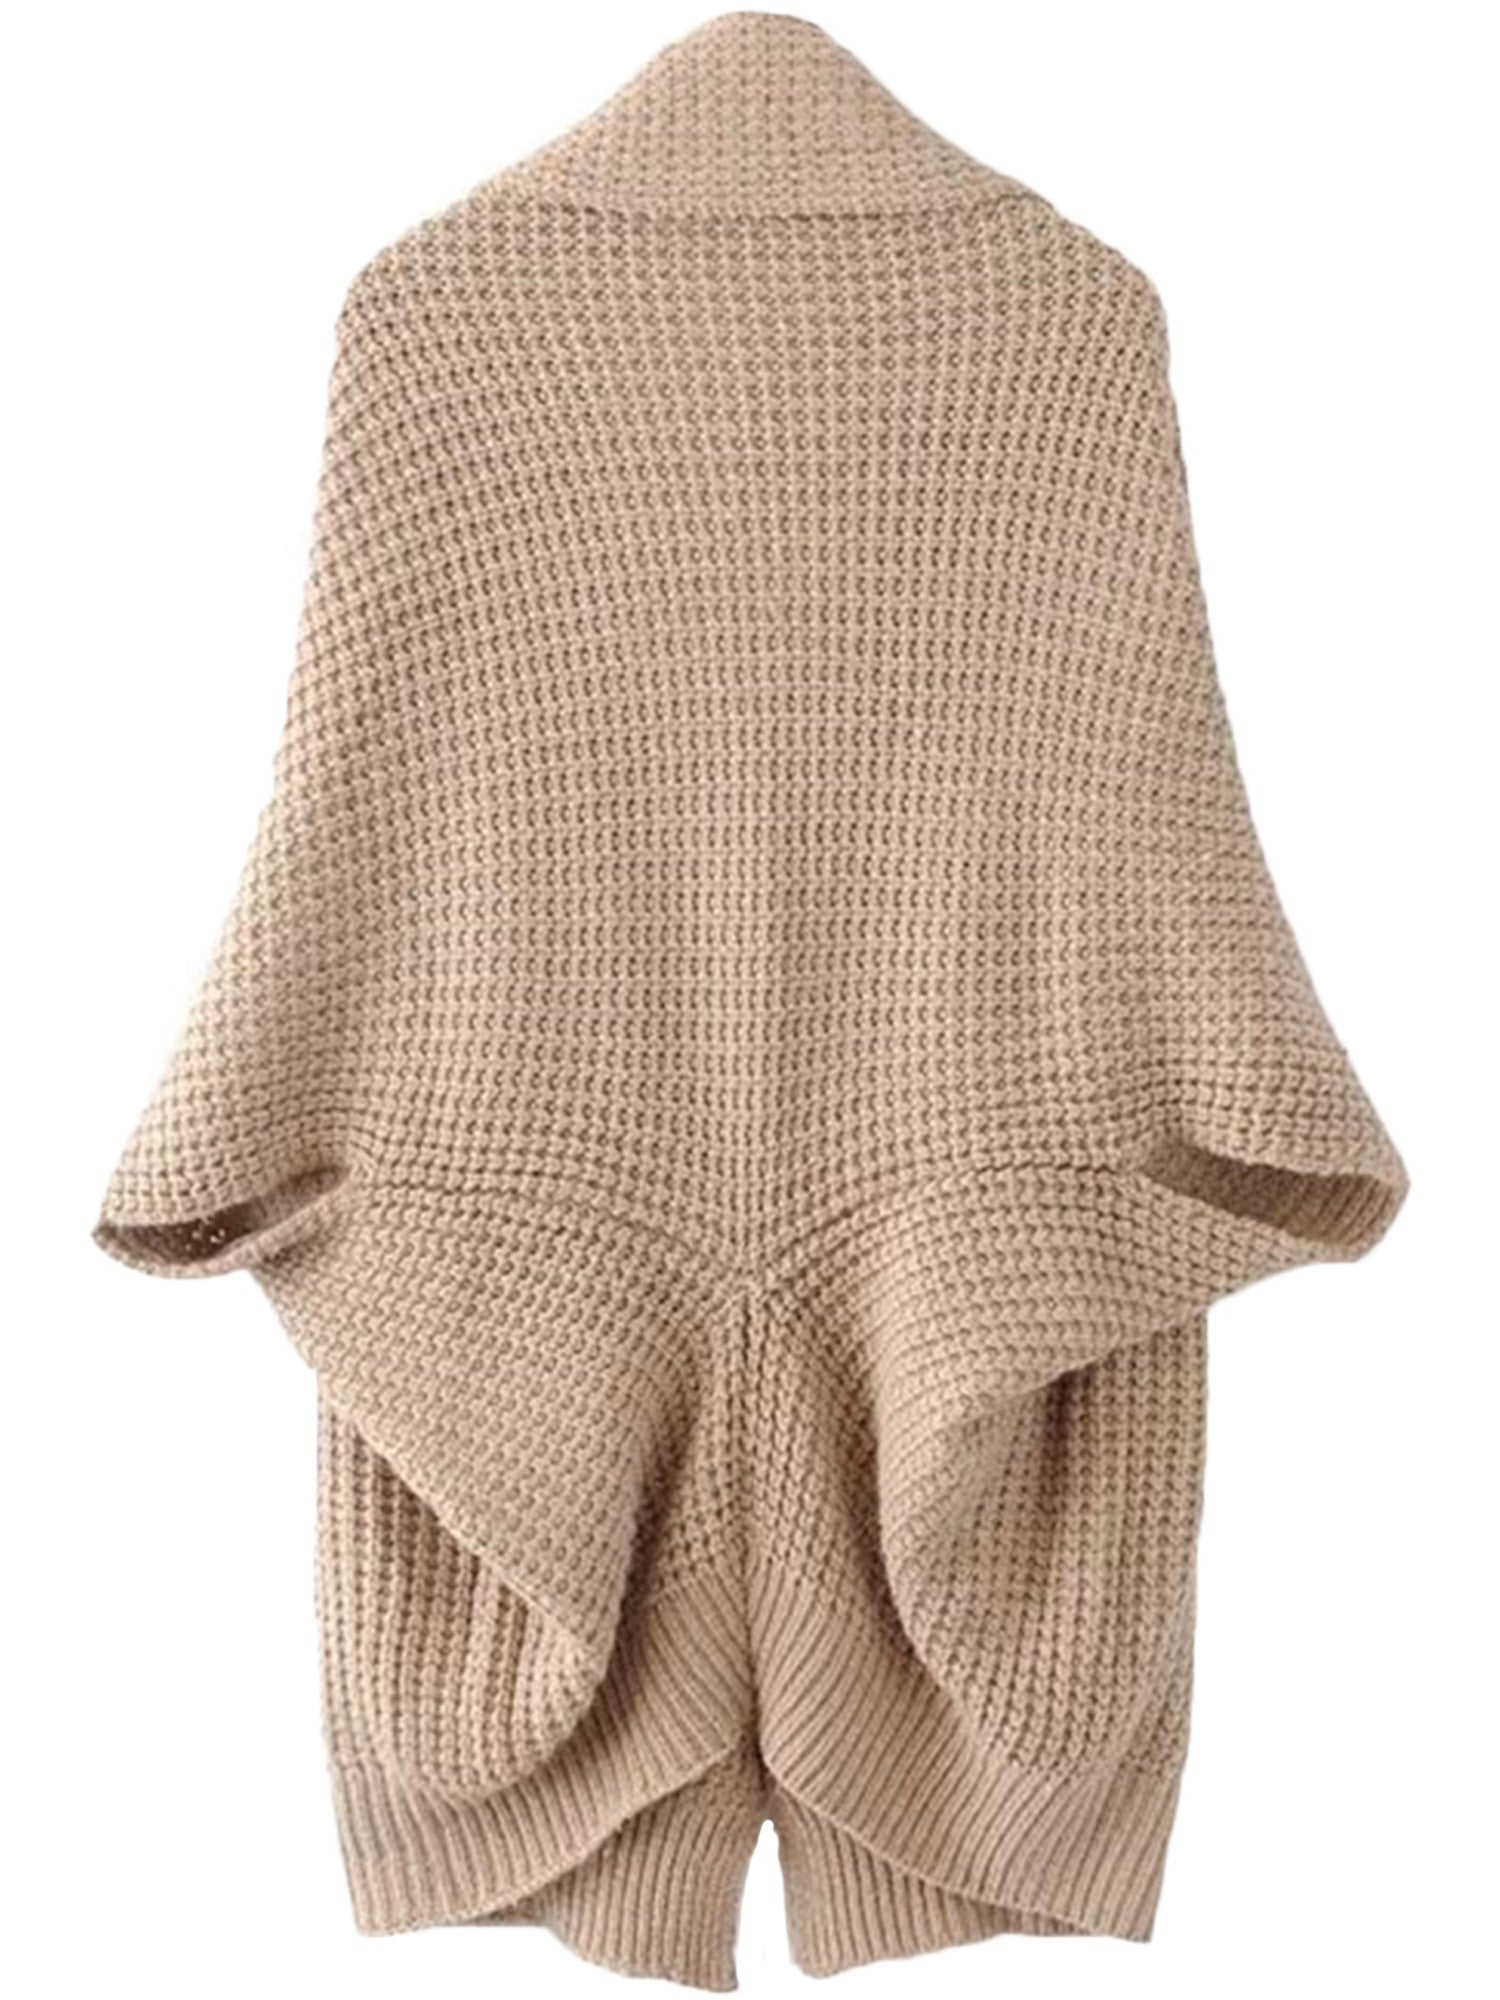 'Michelina' Open Wrap Pocket Cardigan (3 Colors Available)